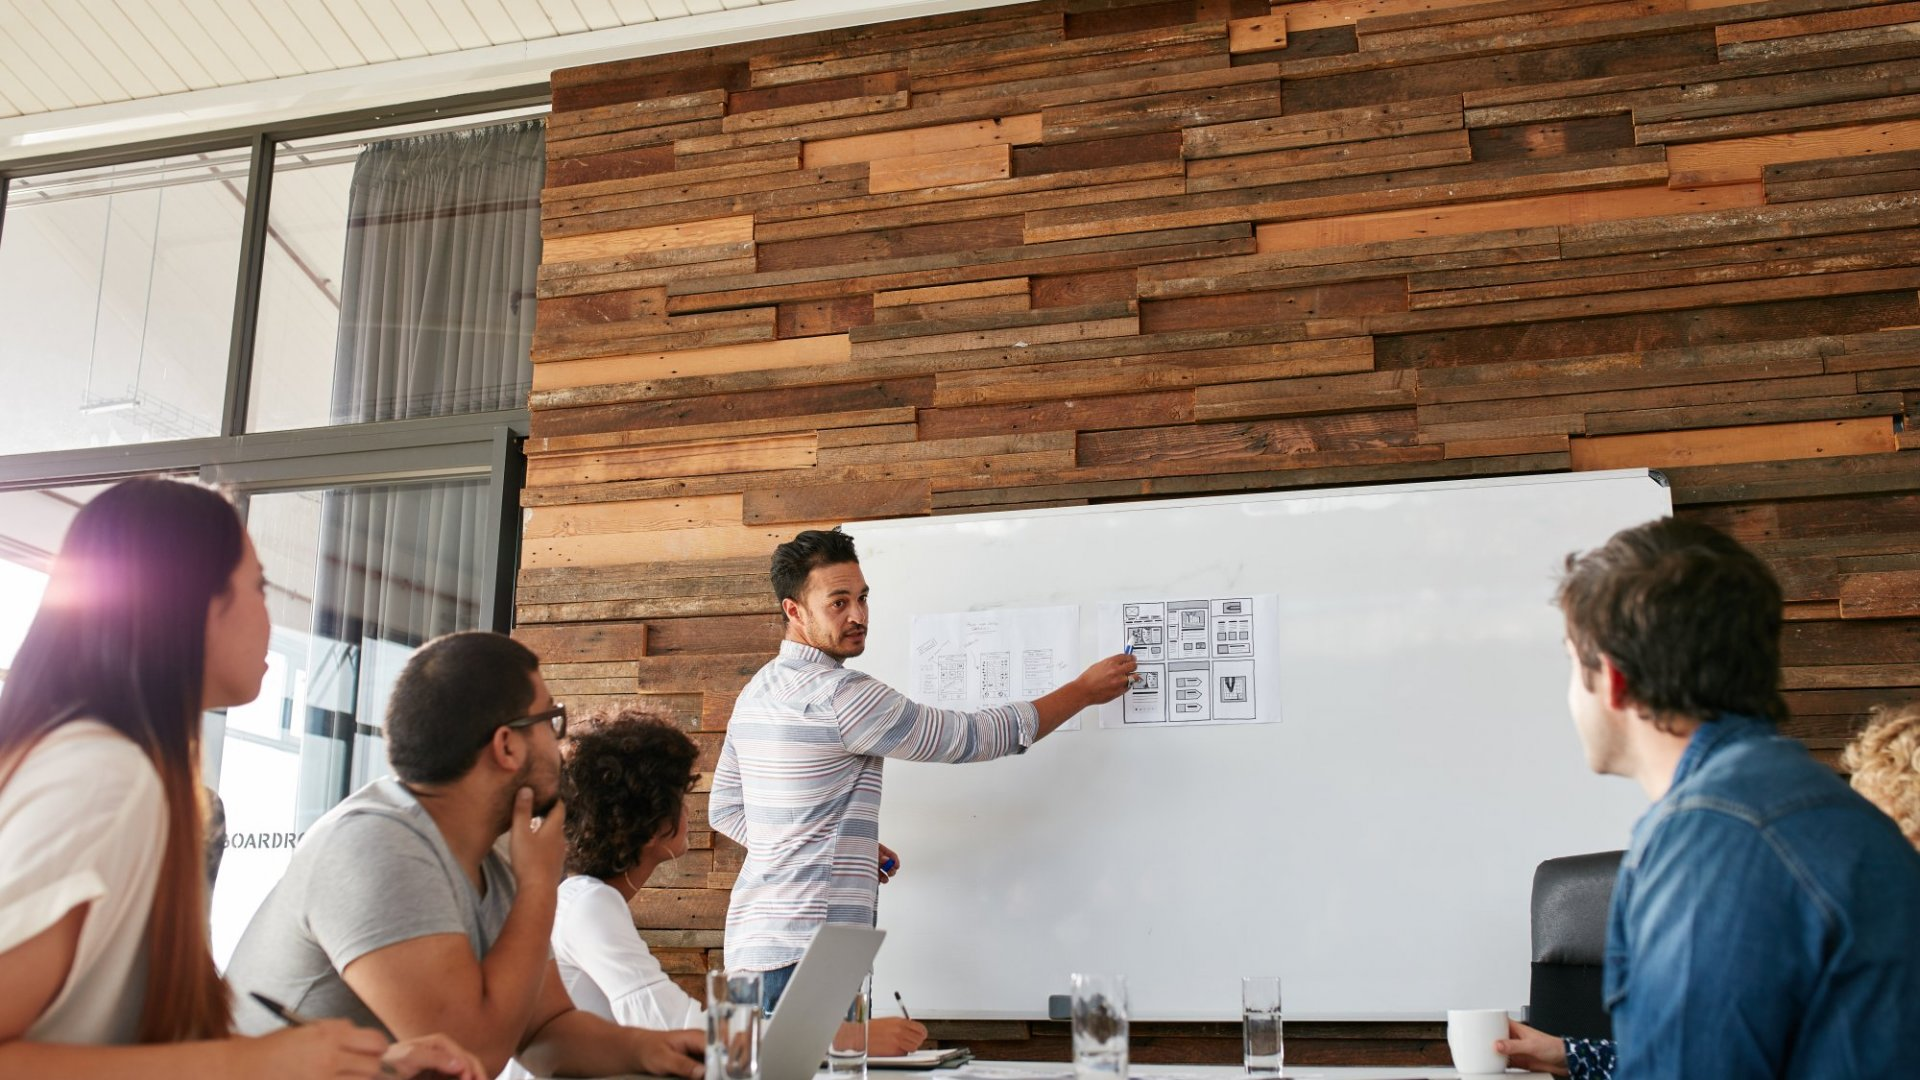 5 Things Your Company's Training Program Needs Right Now